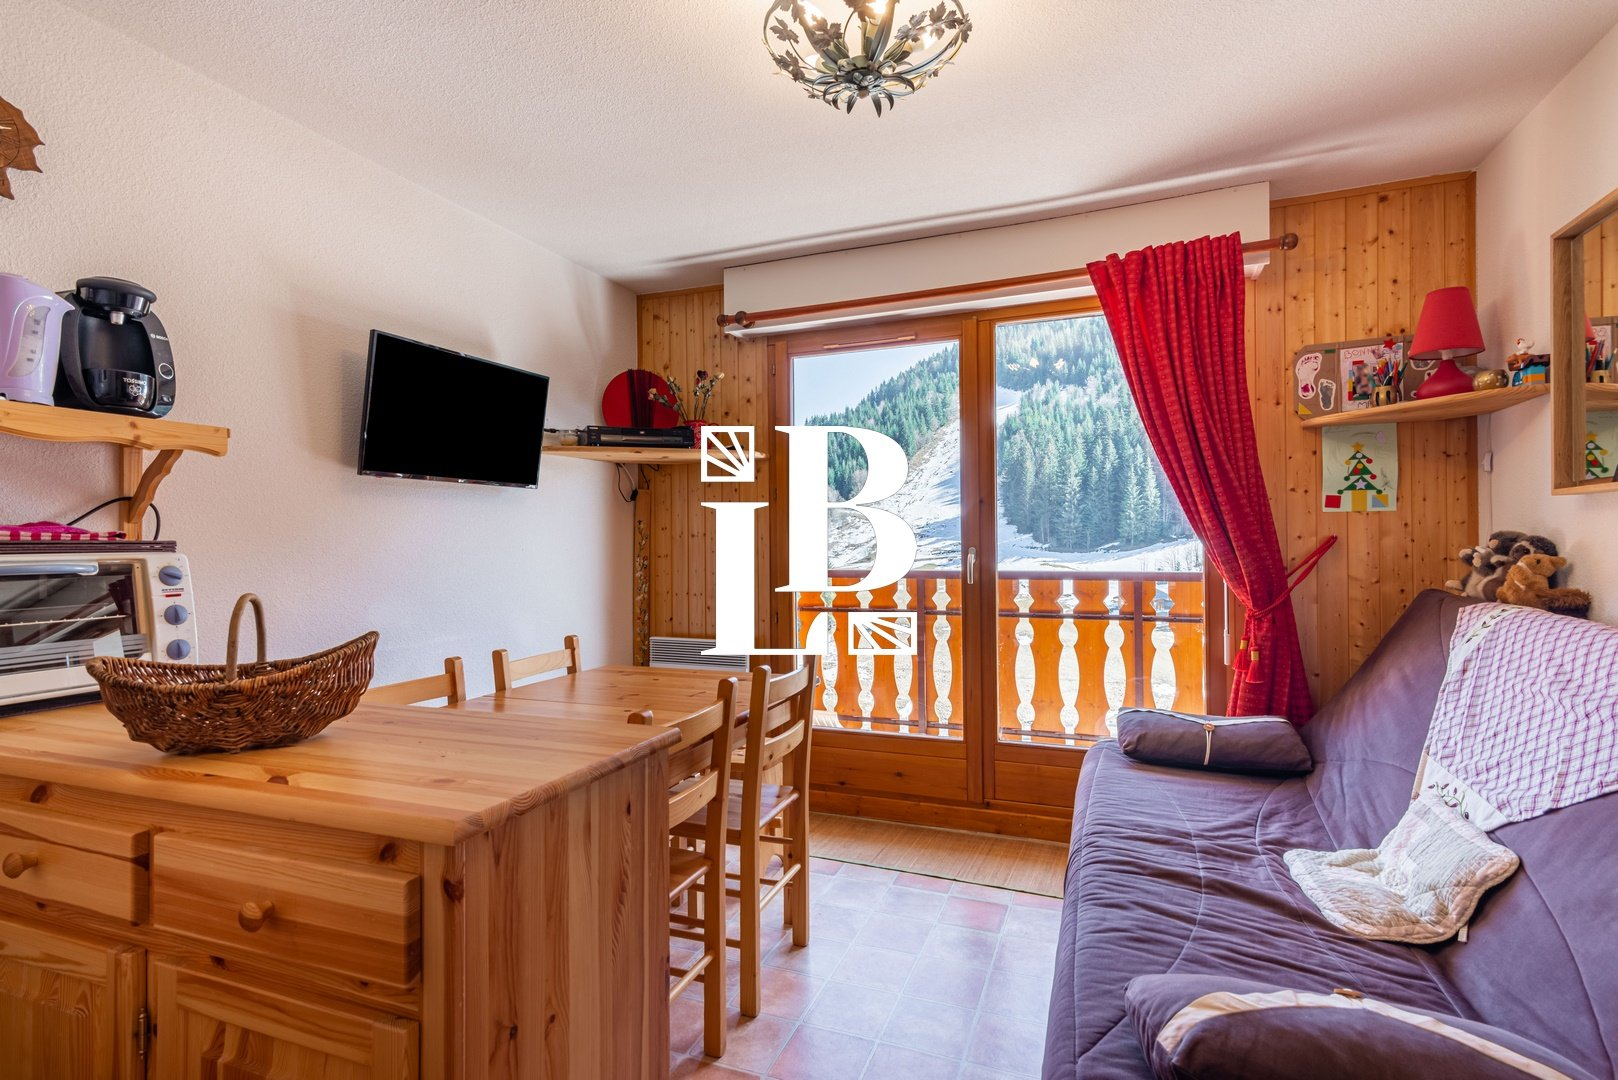 2 ROOM FLAT + SLEEPING CABIN Accommodation in Le Biot